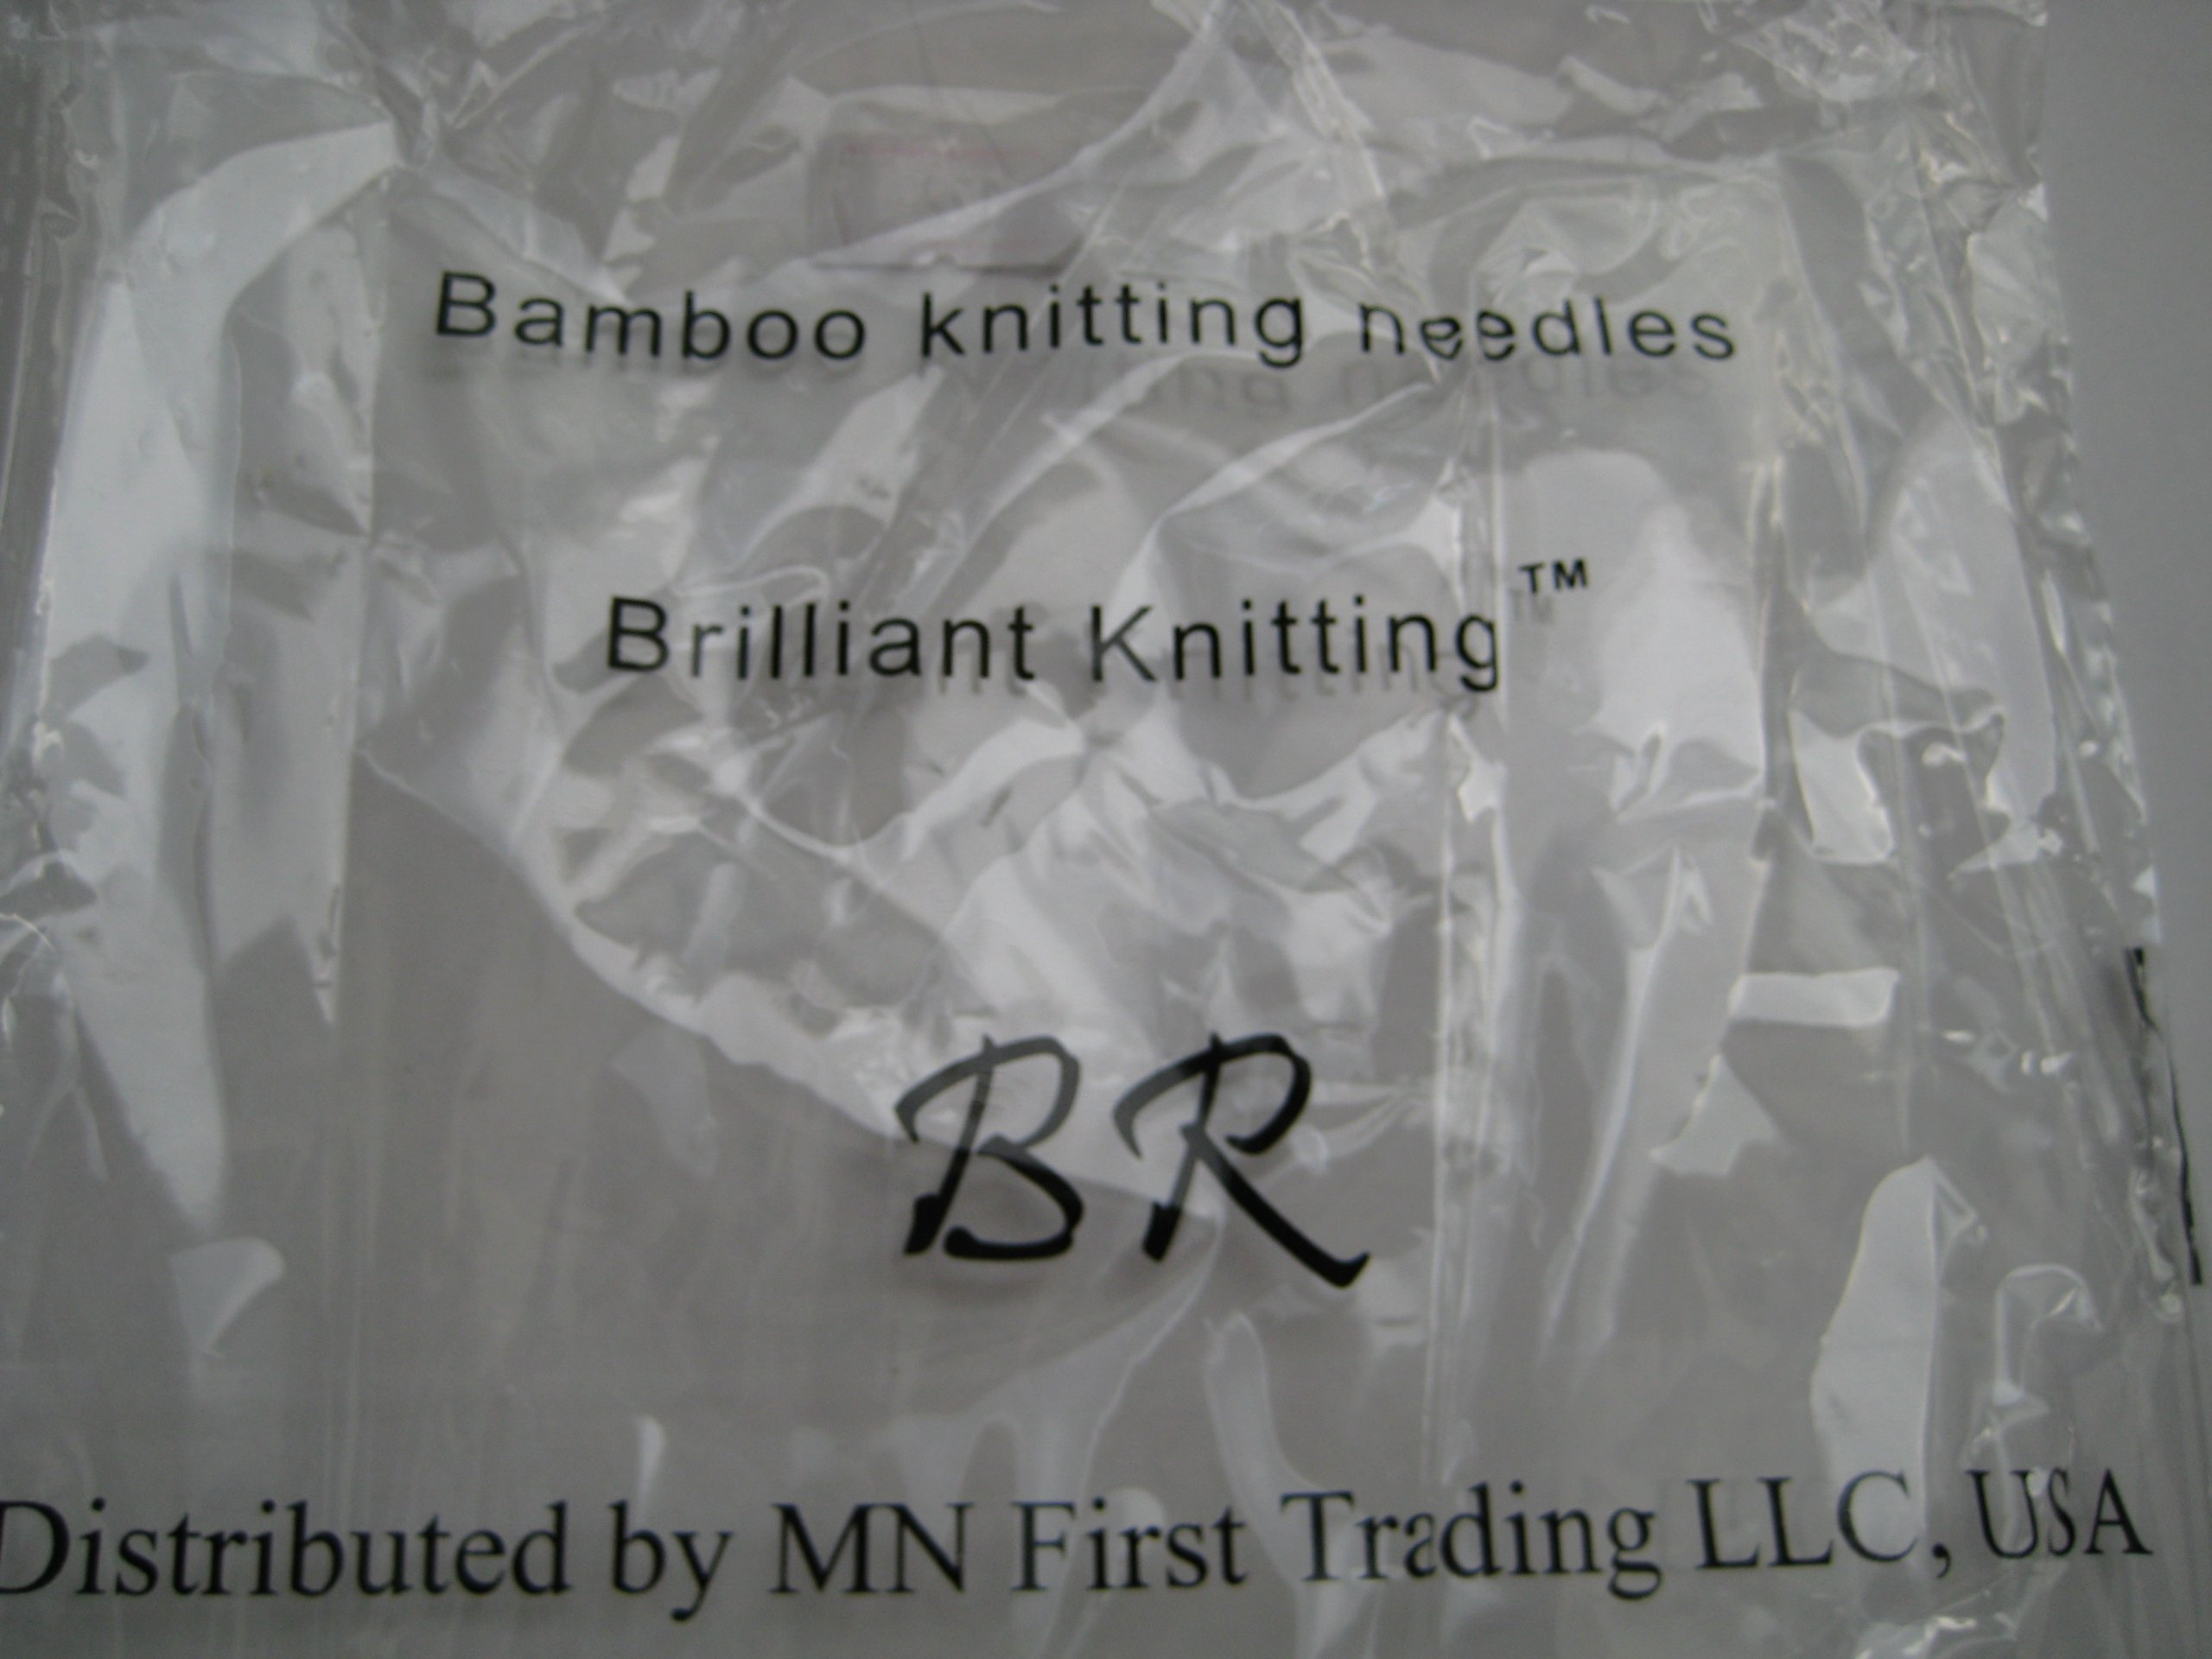 Bamboo Circular Knitting Needles Size US 35 (19 mm) BrilliantKnitting (BR Brand), length 29'' inches from tip to tip